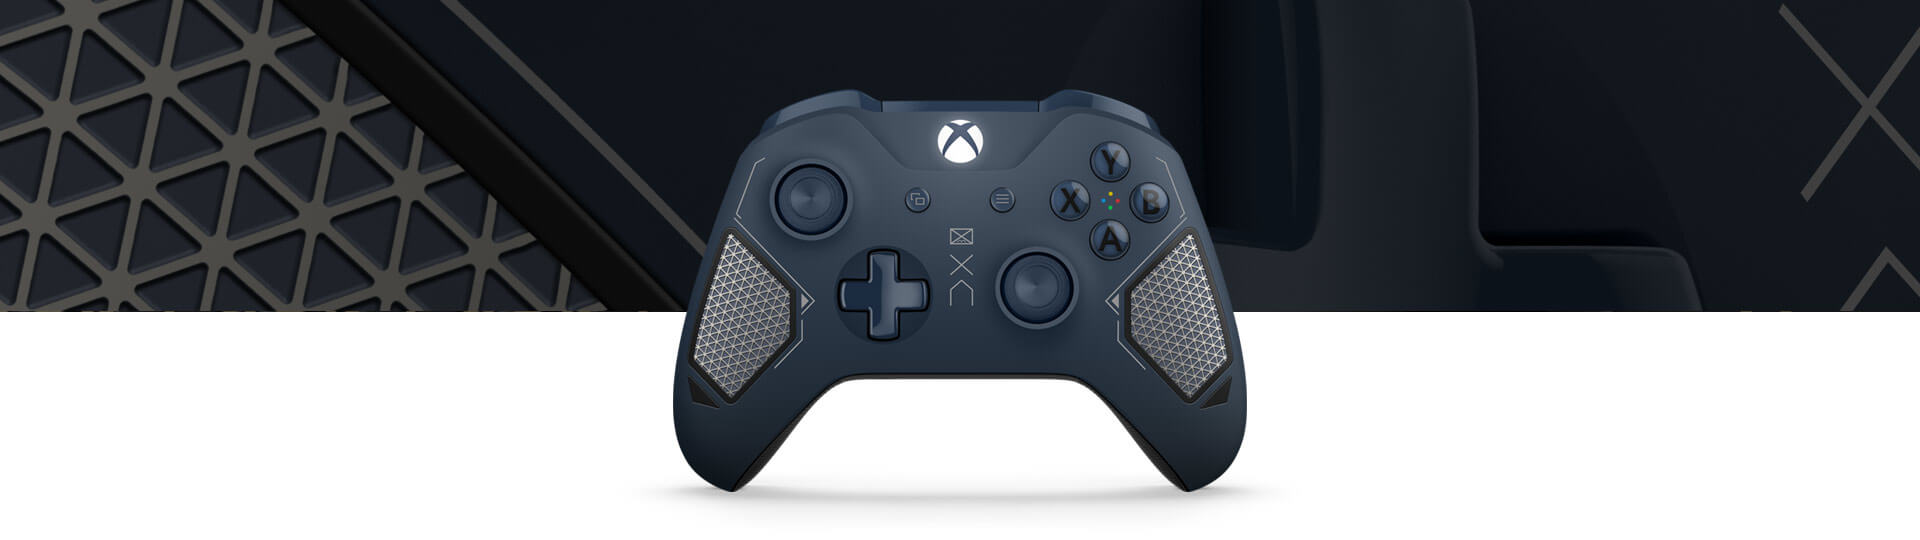 how to connect wireless xbox controller to windows 10